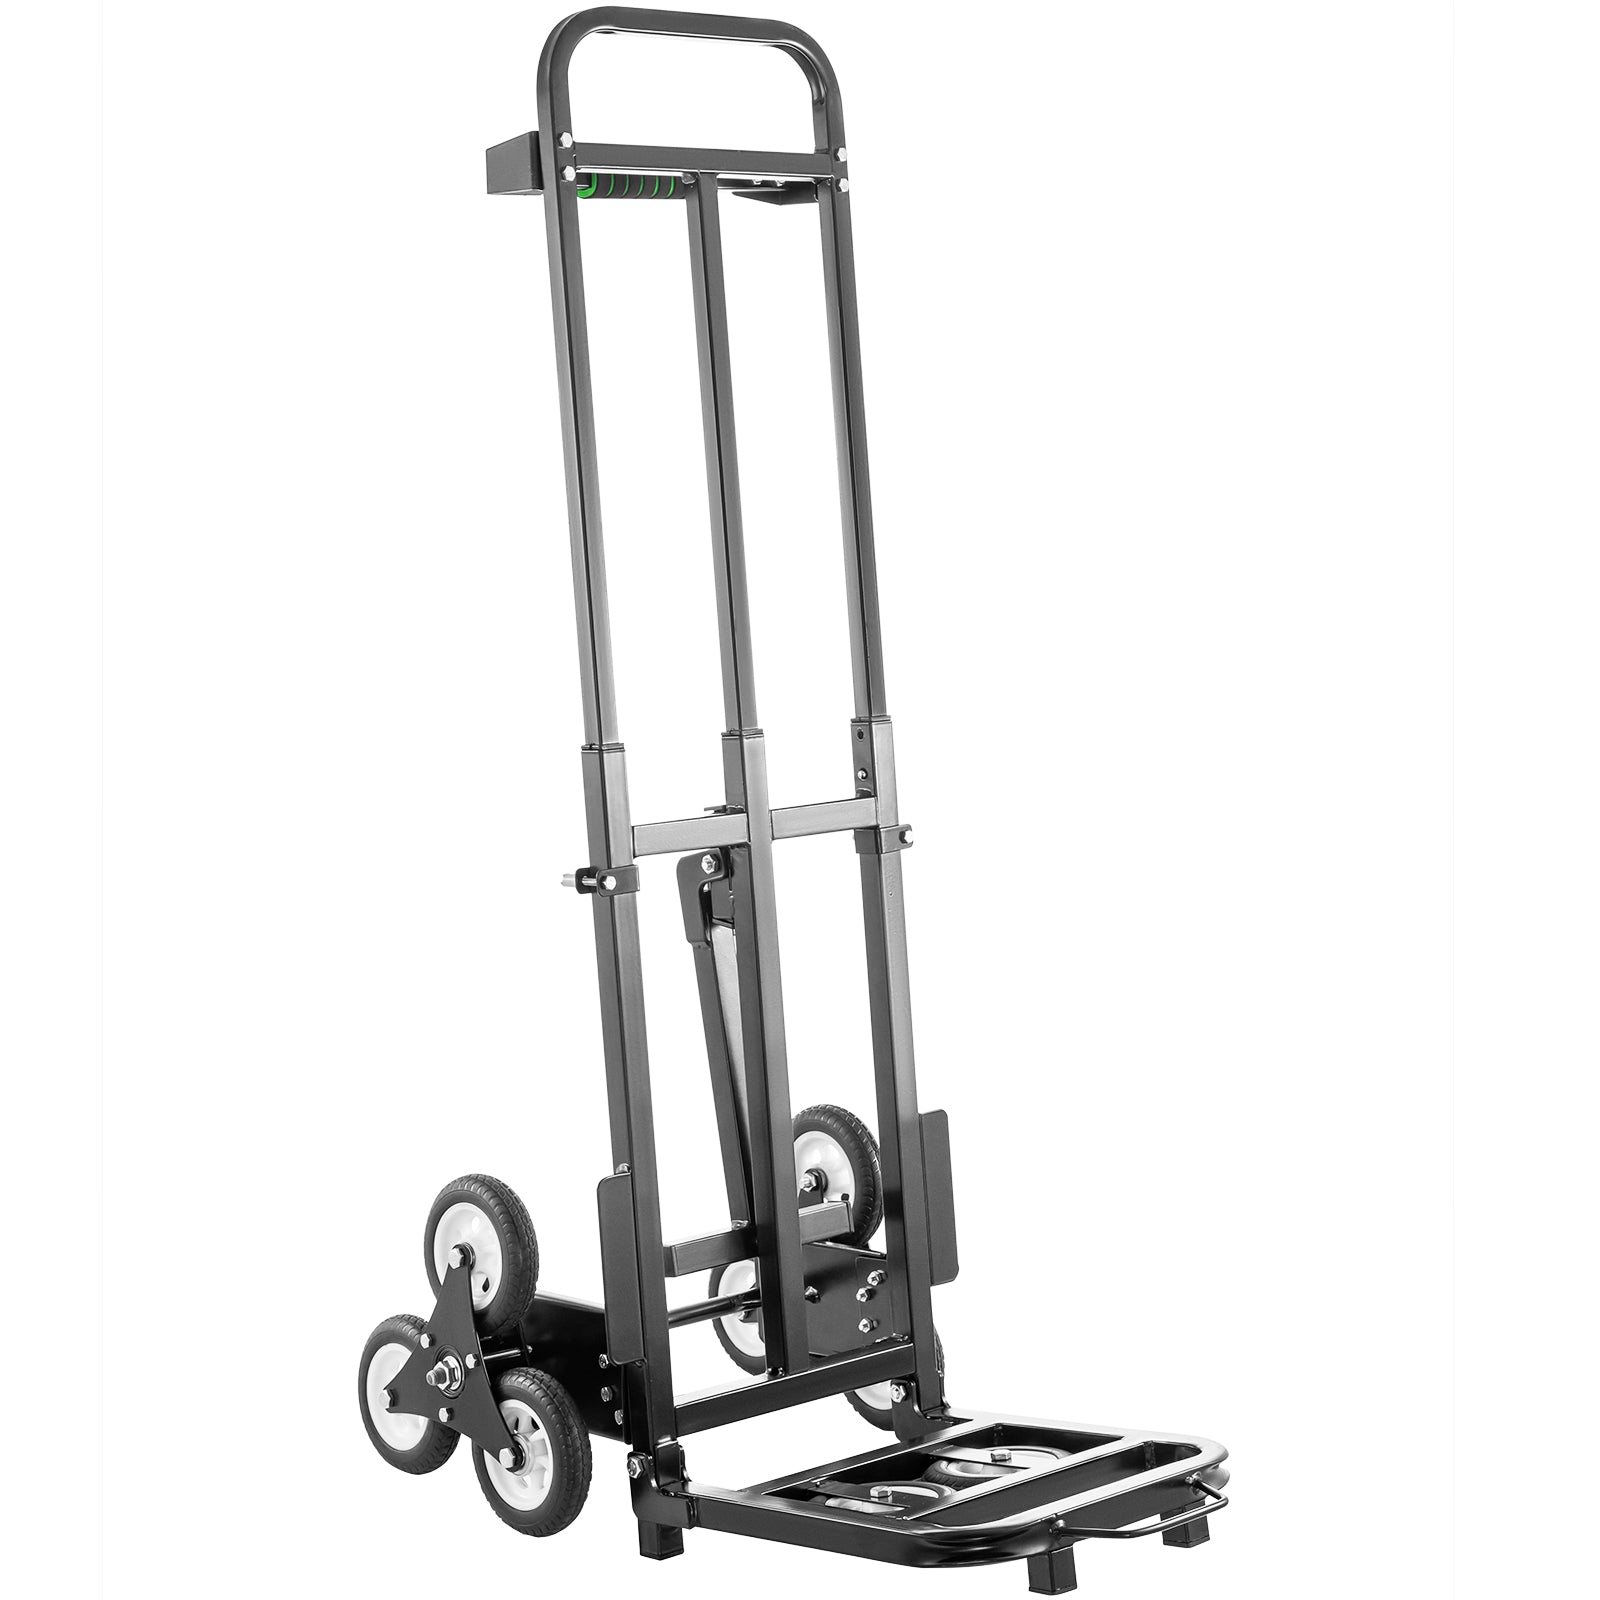 Stair Climbing Cart 460lbs Portable Folding Trolley 6 Wheels, W/ 2 Backup Wheels